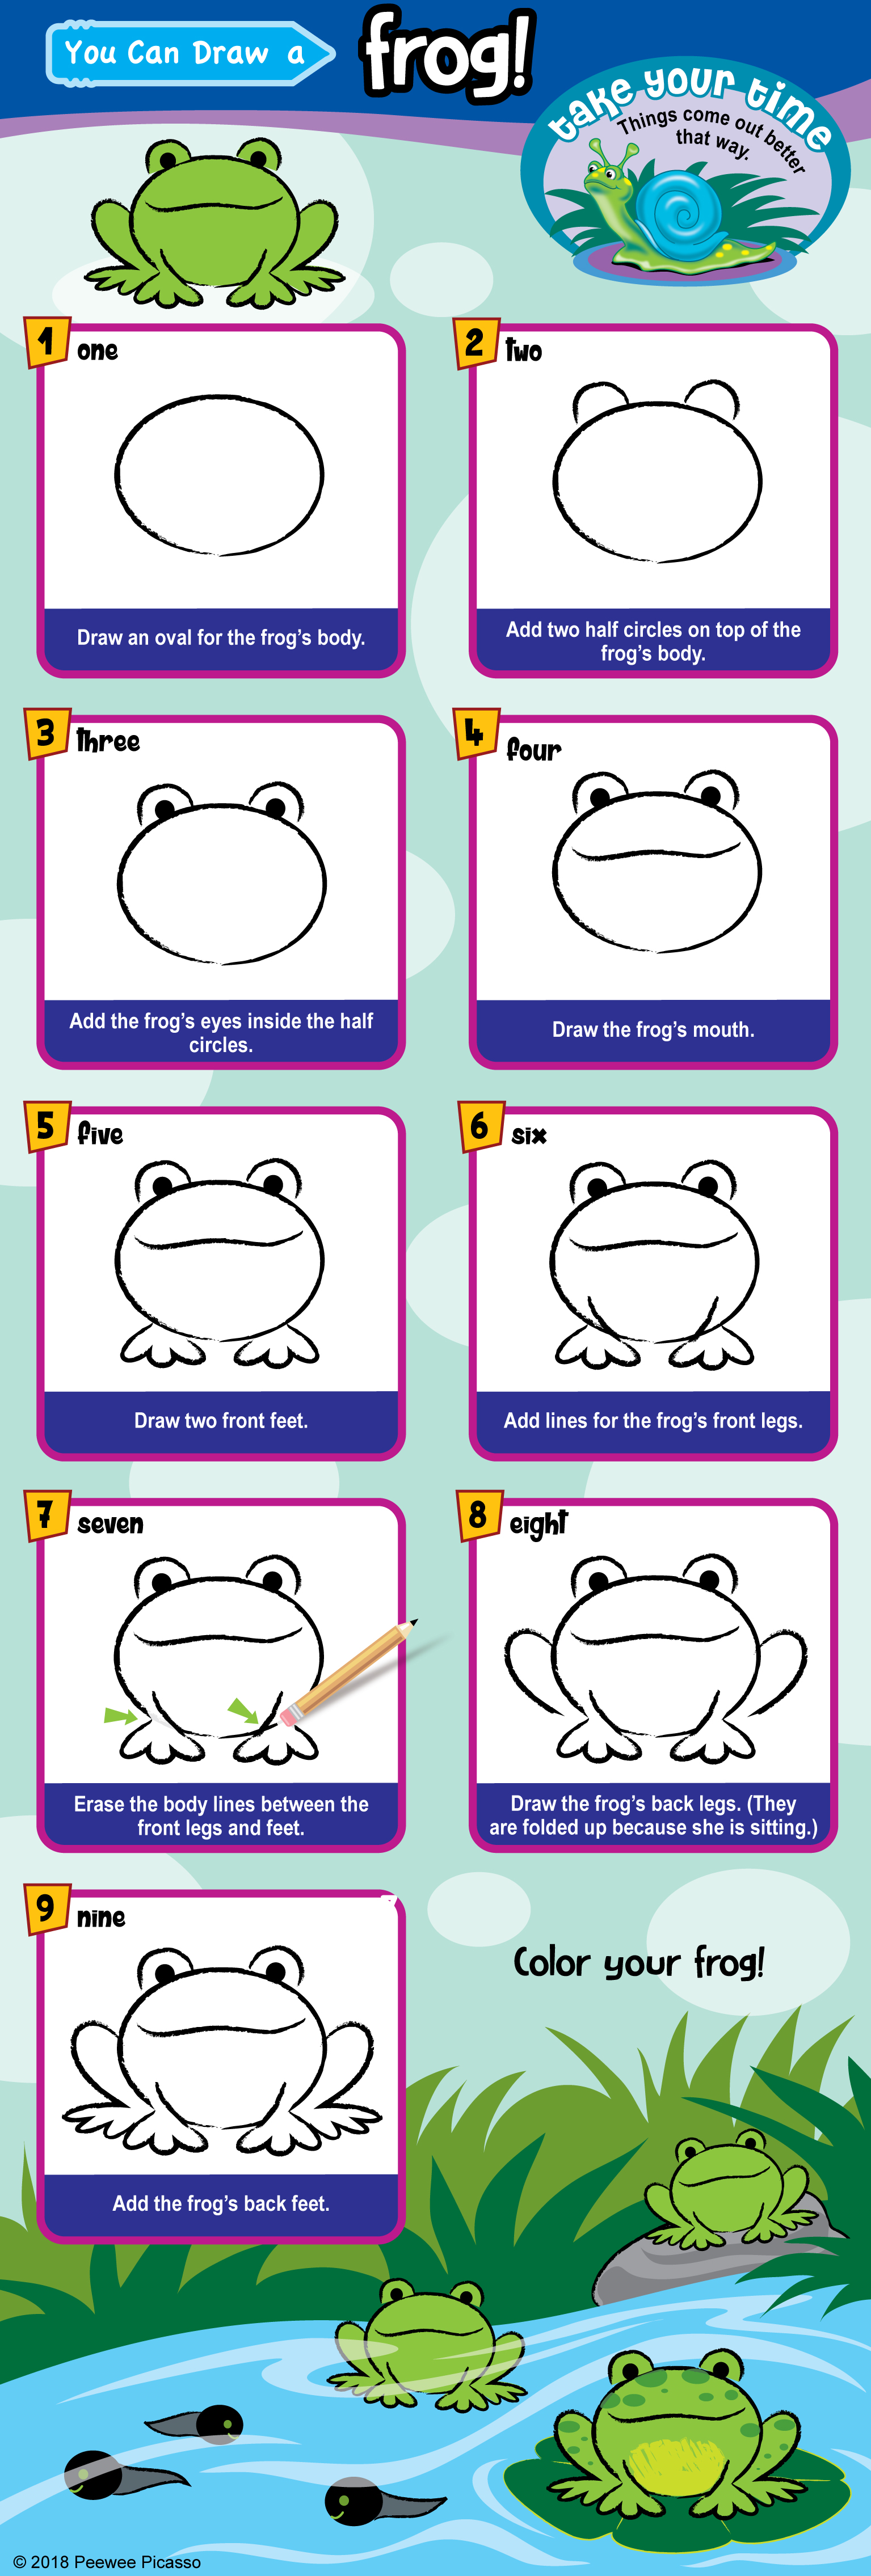 easy step-by-step instructions to draw a frog for kids